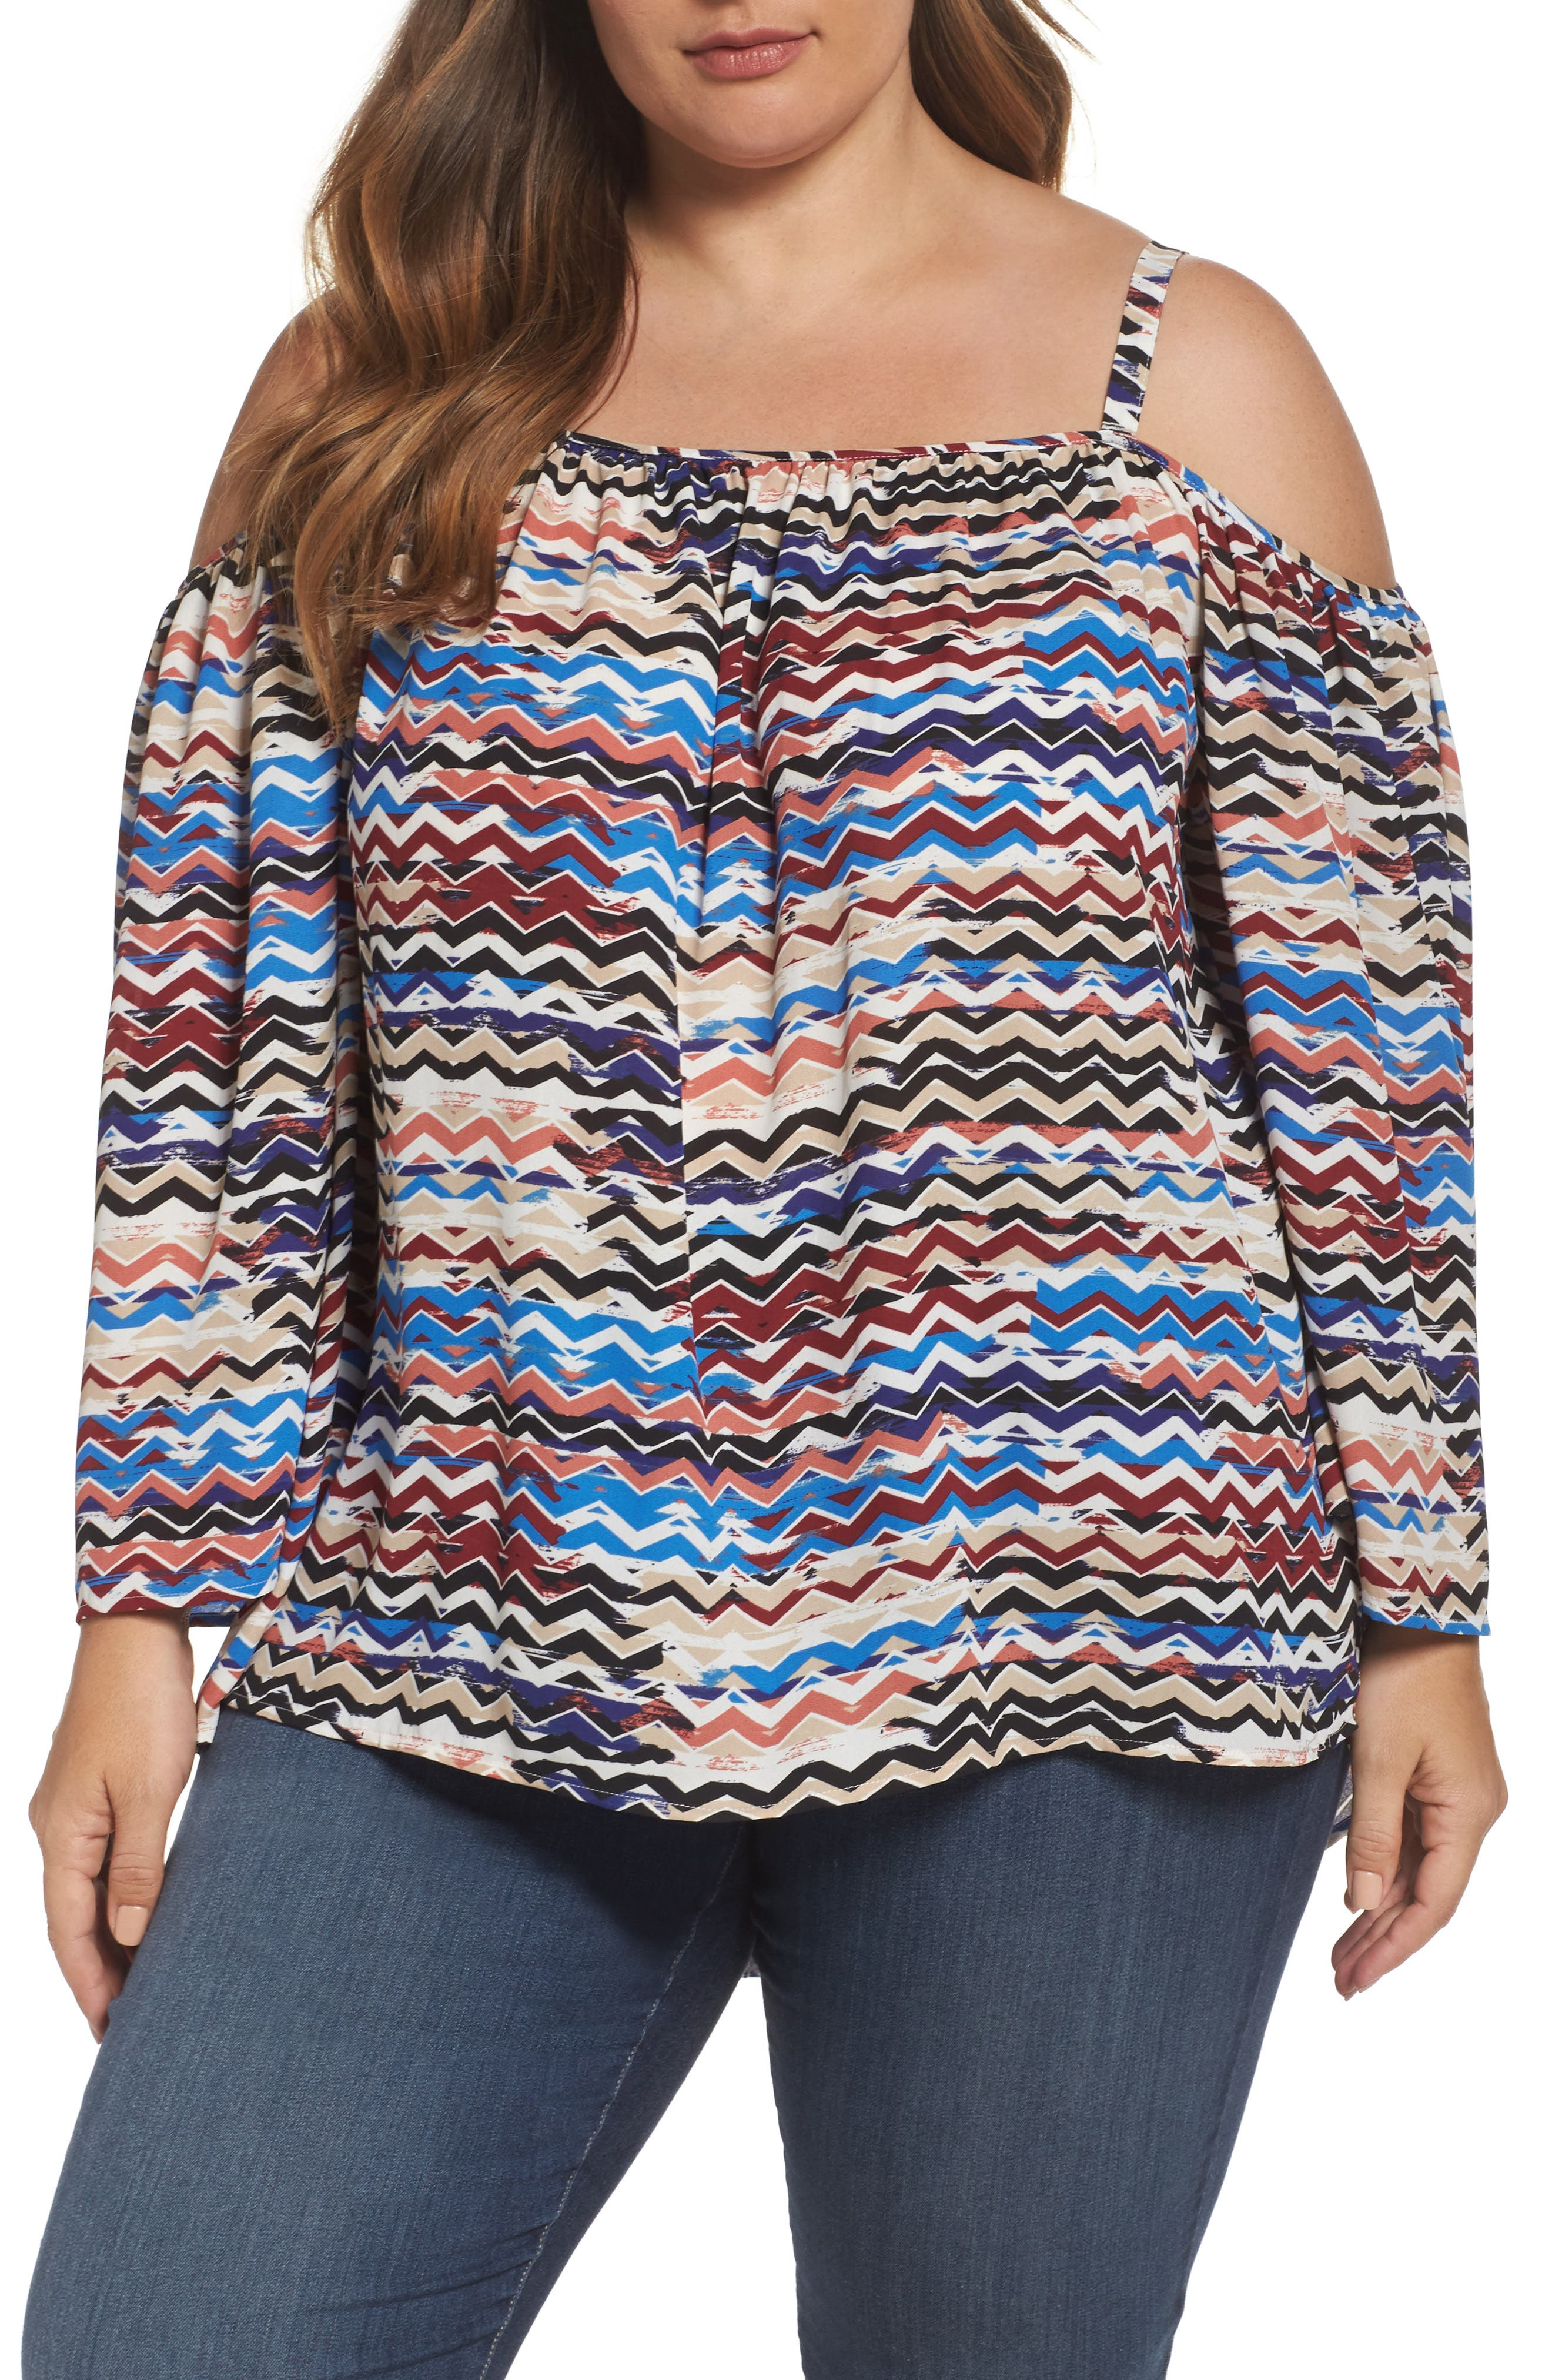 Vince Camuto Herringbone Muses Off the Shoulder Top (Plus Size)